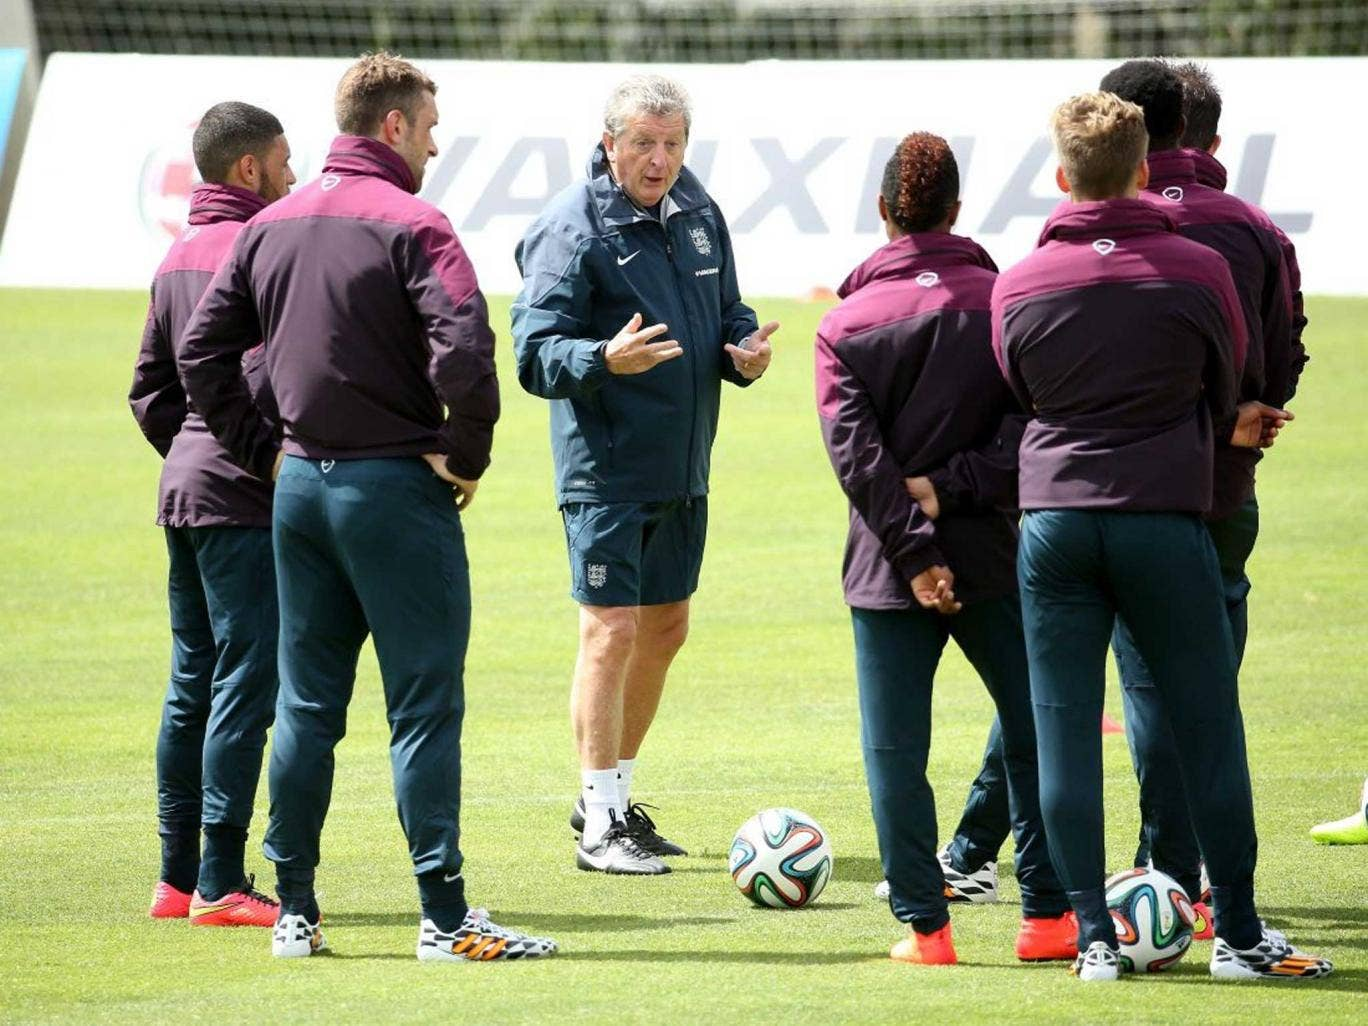 Vying for attention: England's World Cup hopefuls surround manager Roy Hodgson in Portugal last week